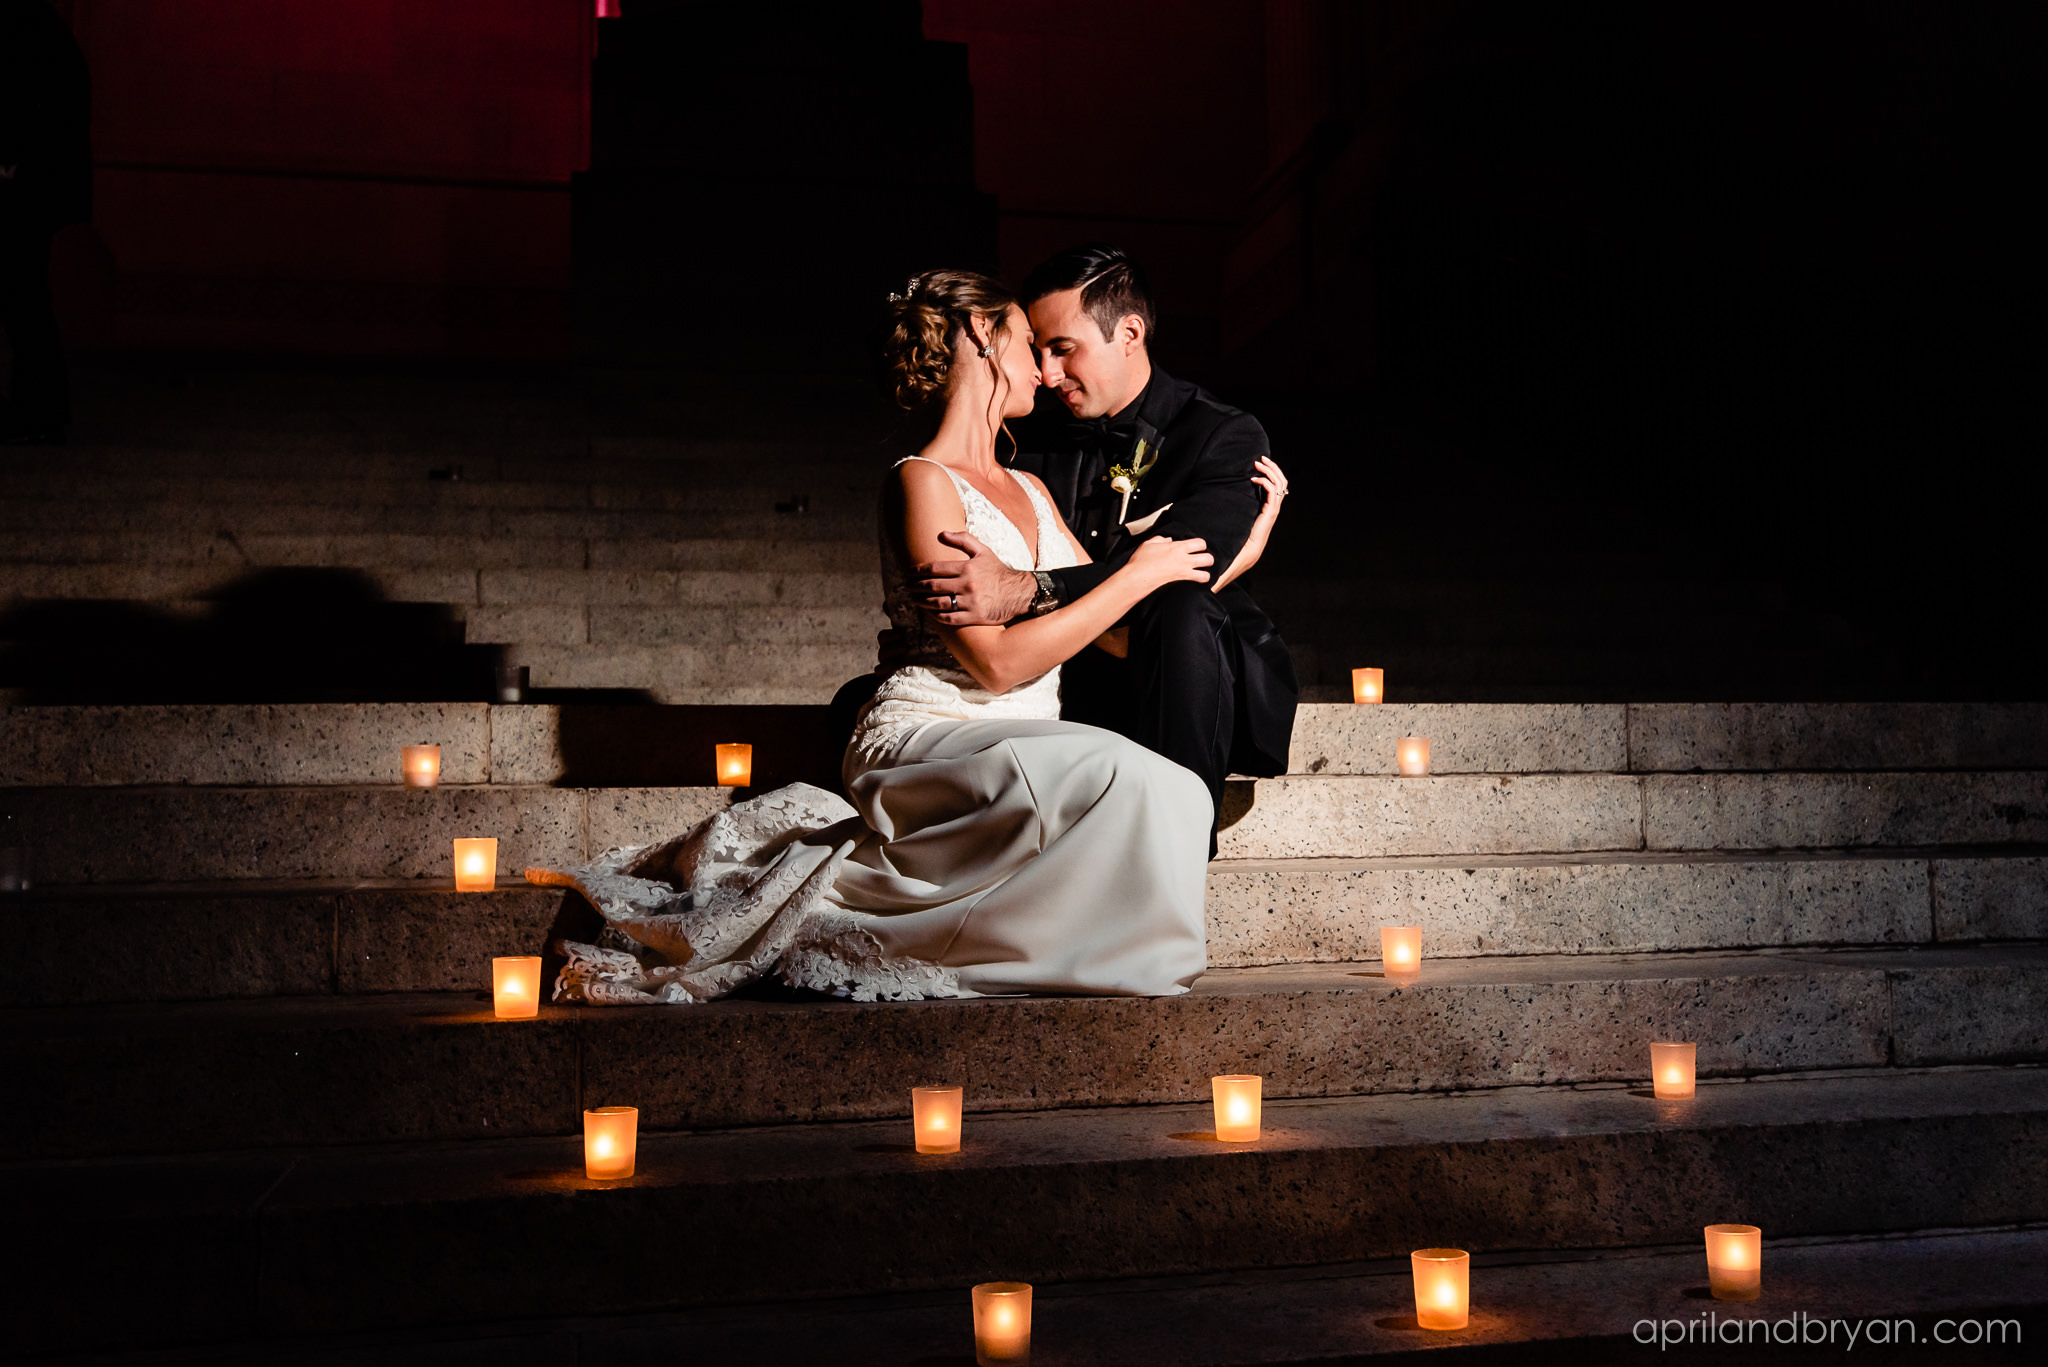 The last warm embrace before bride and groom are off to their honeymoon after The Franklin Institute held their Dream Wedding, captured by April & Bryan Photography.